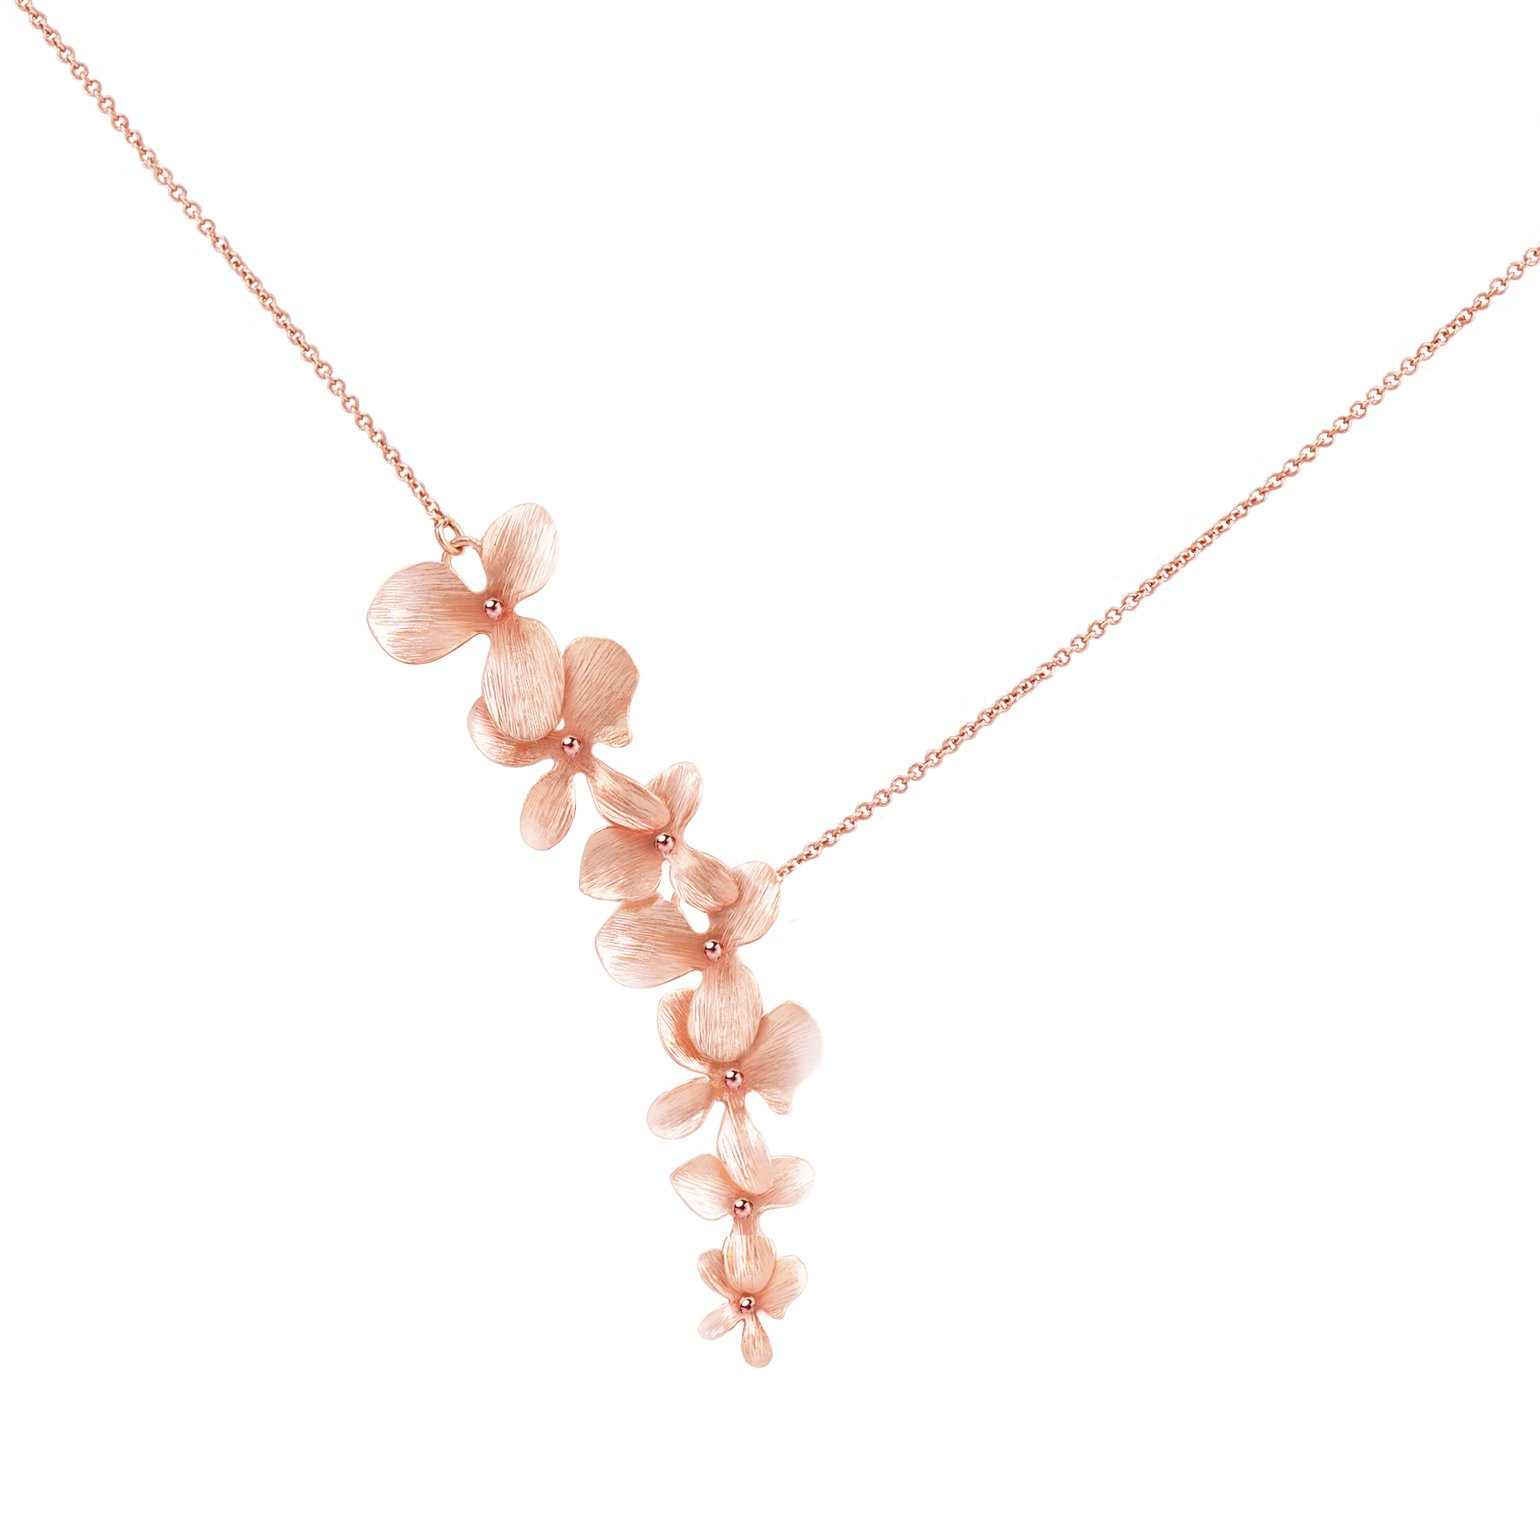 Ann Tarry 24K Rose Gold Plated Orchid Flower Necklace + Beautiful Gift Box (Rose-Gold Plated Necklace)